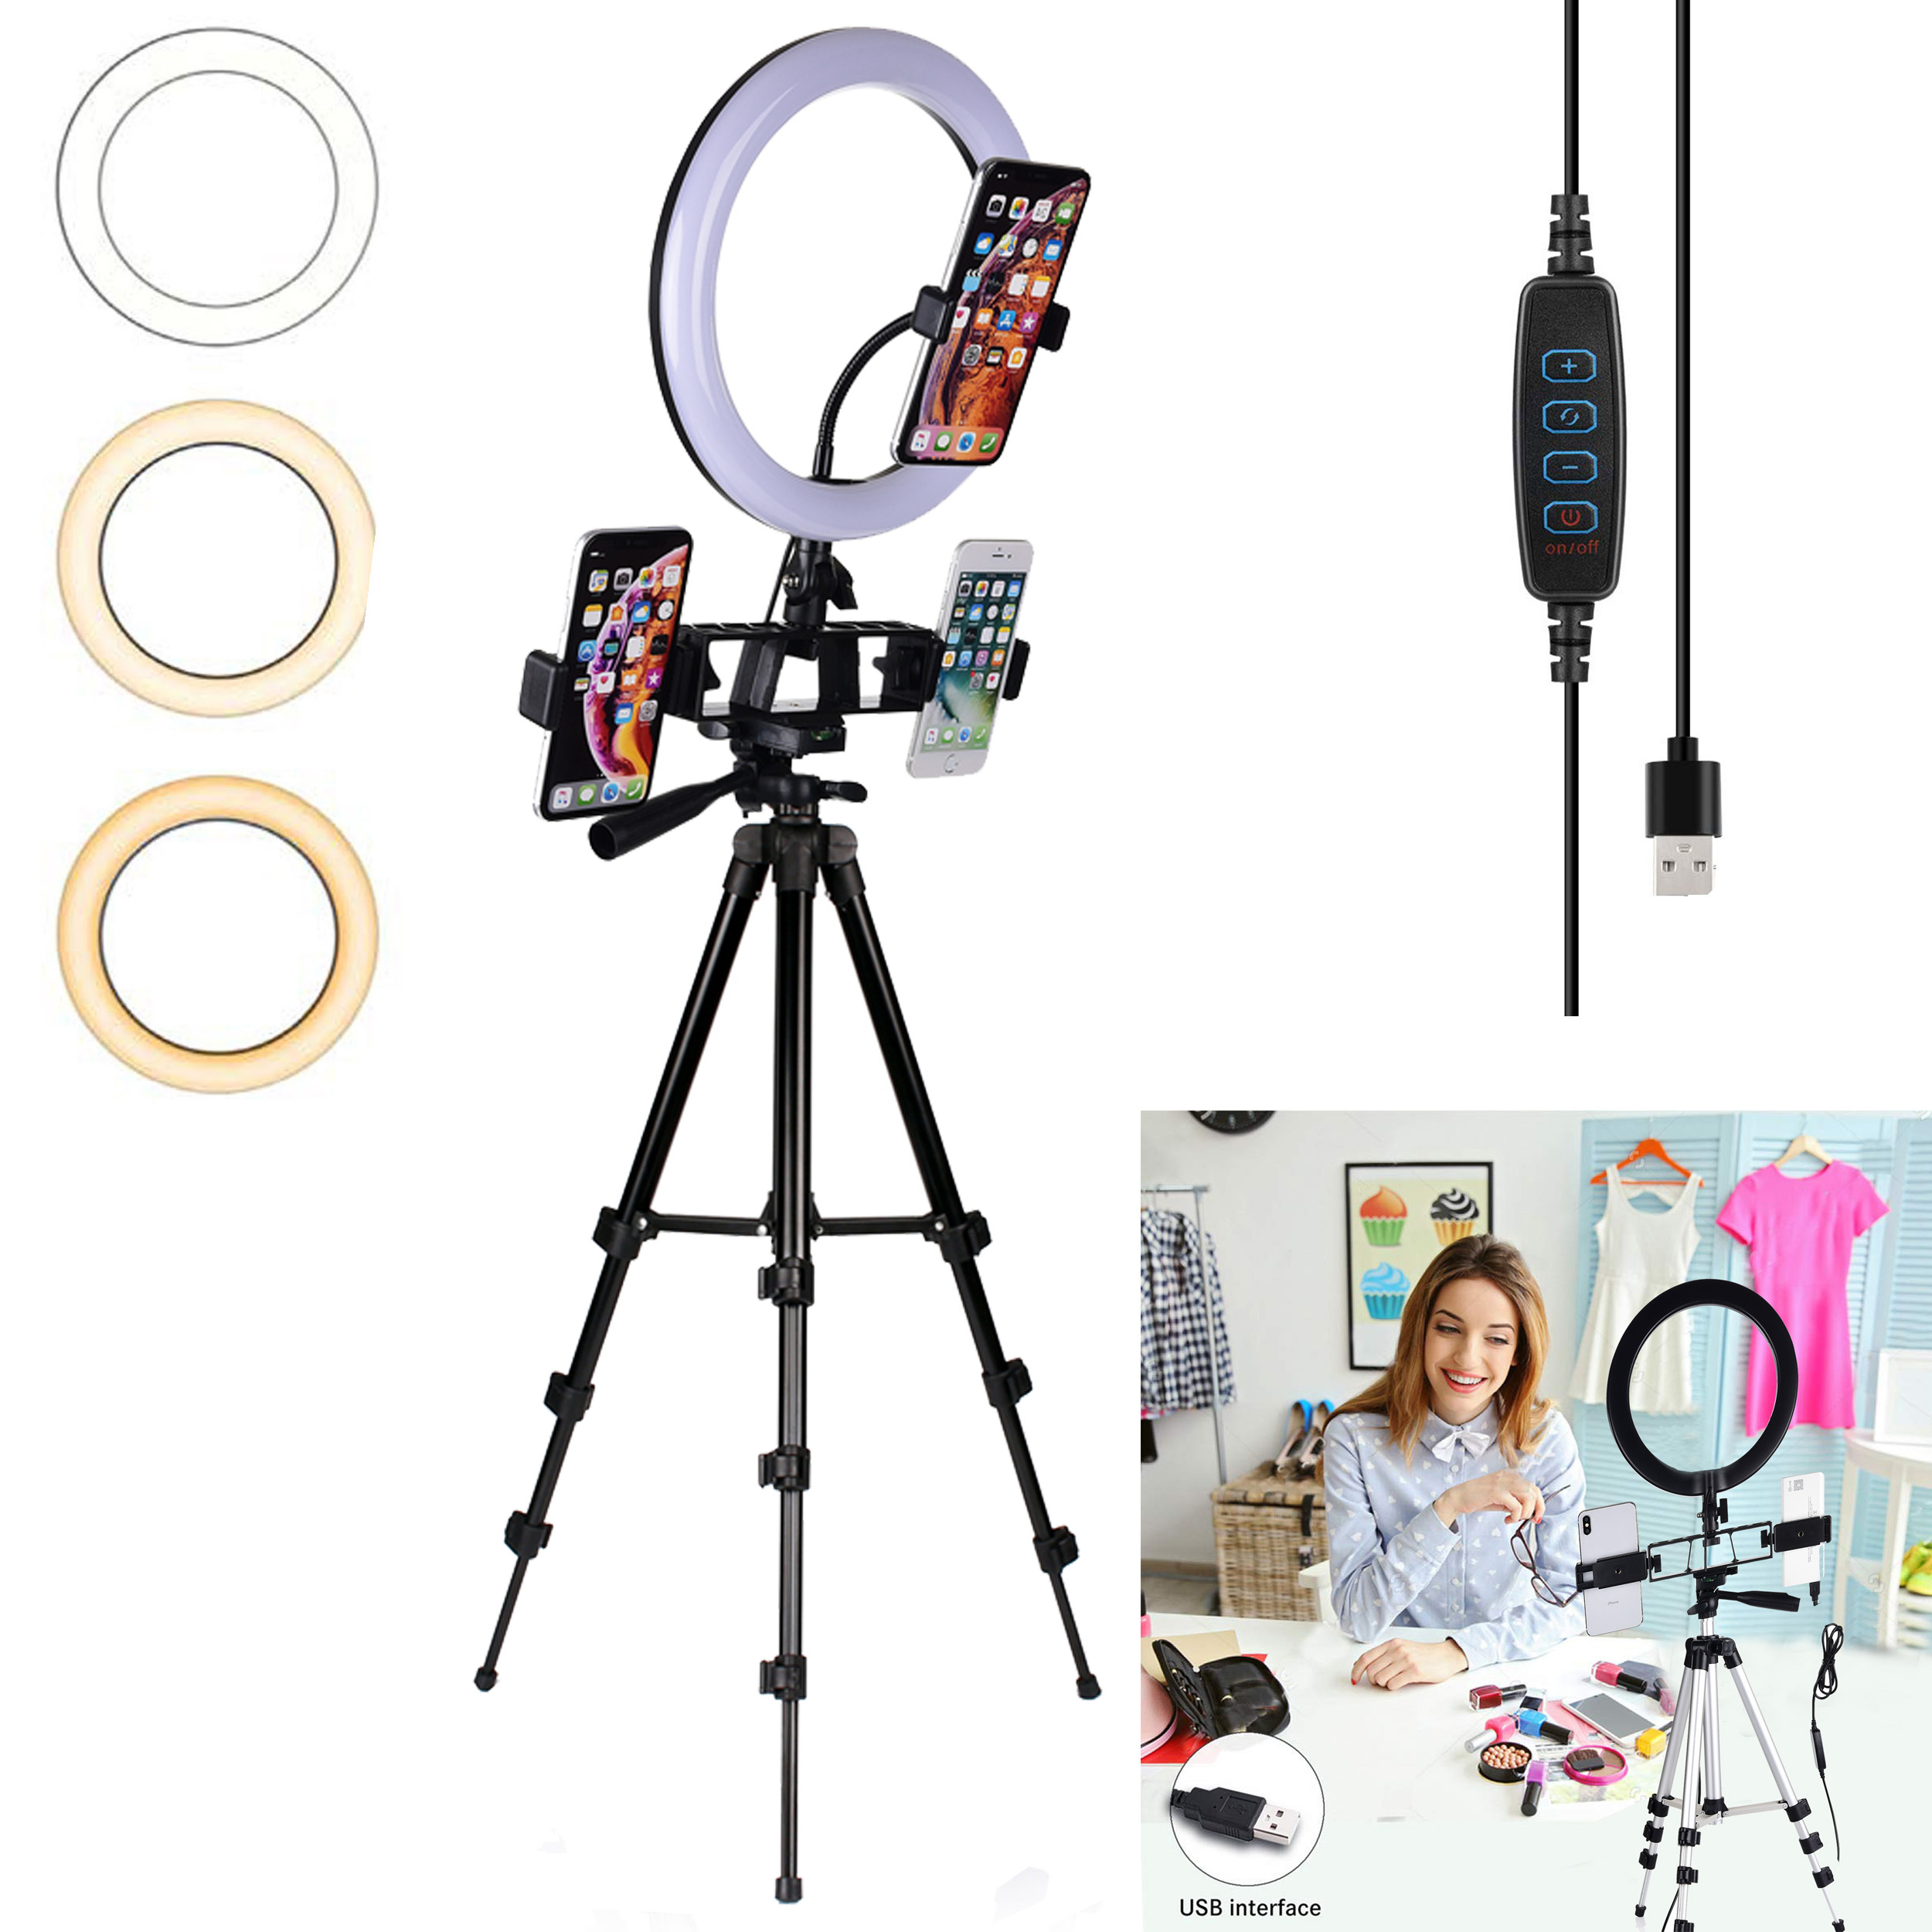 <font><b>LED</b></font> Ring Licht Dimmbare Ringlight Bi Farbe 3200K 5500K Fotografie Foto Studio YouTube Video Schießen Ring Licht <font><b>Lampe</b></font> & stativ image